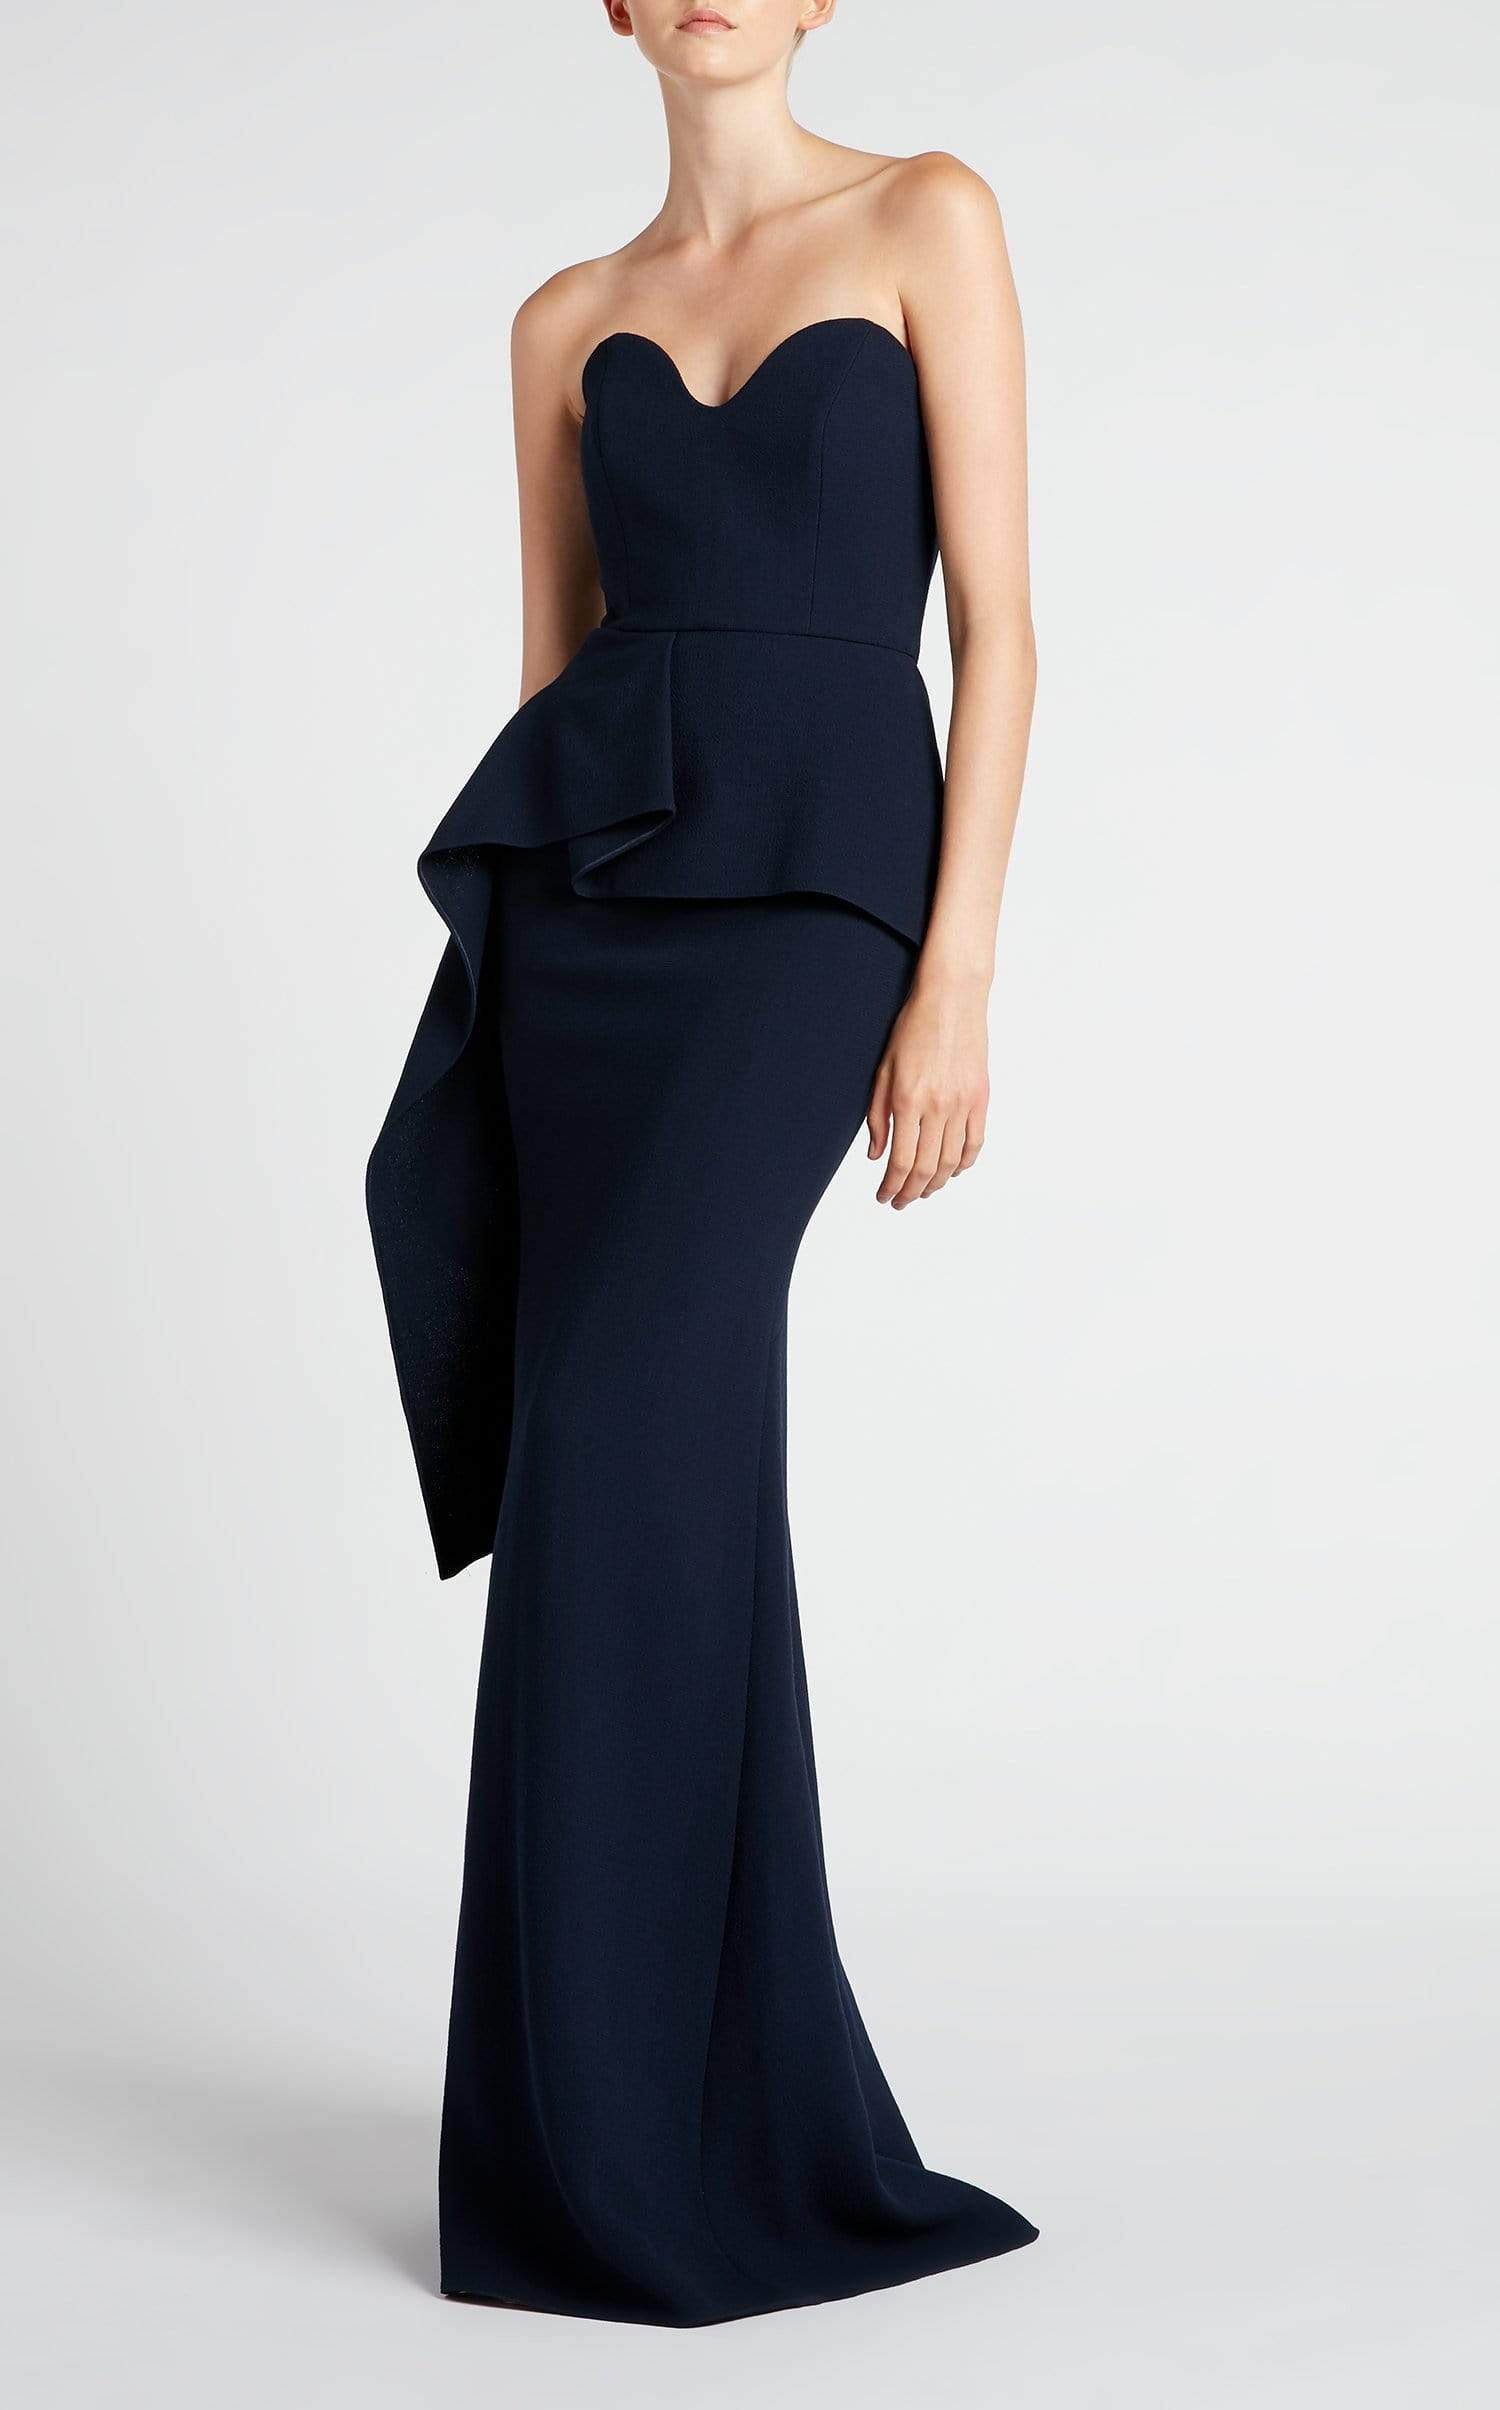 Bond Gown In Navy from Roland Mouret